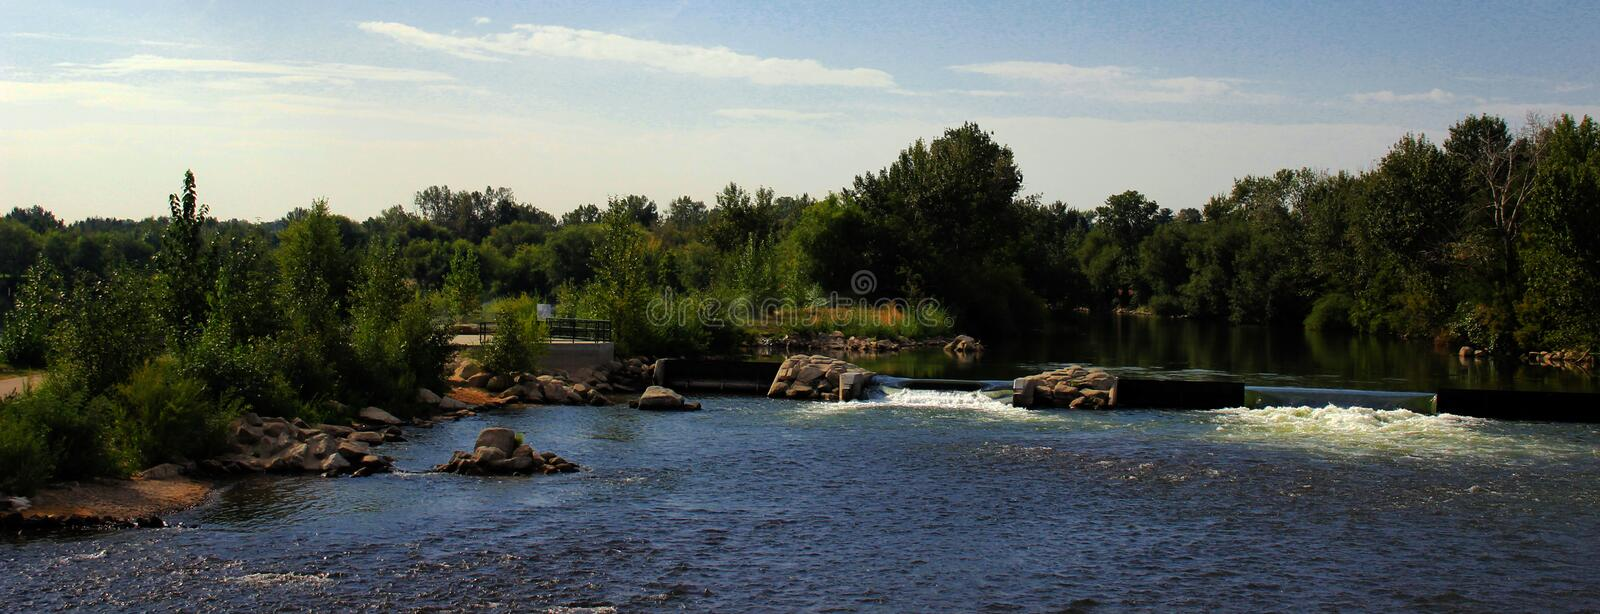 Looking Over the Boise River. A view from a bridge over the Boise River in Boise, Idaho royalty free stock photo